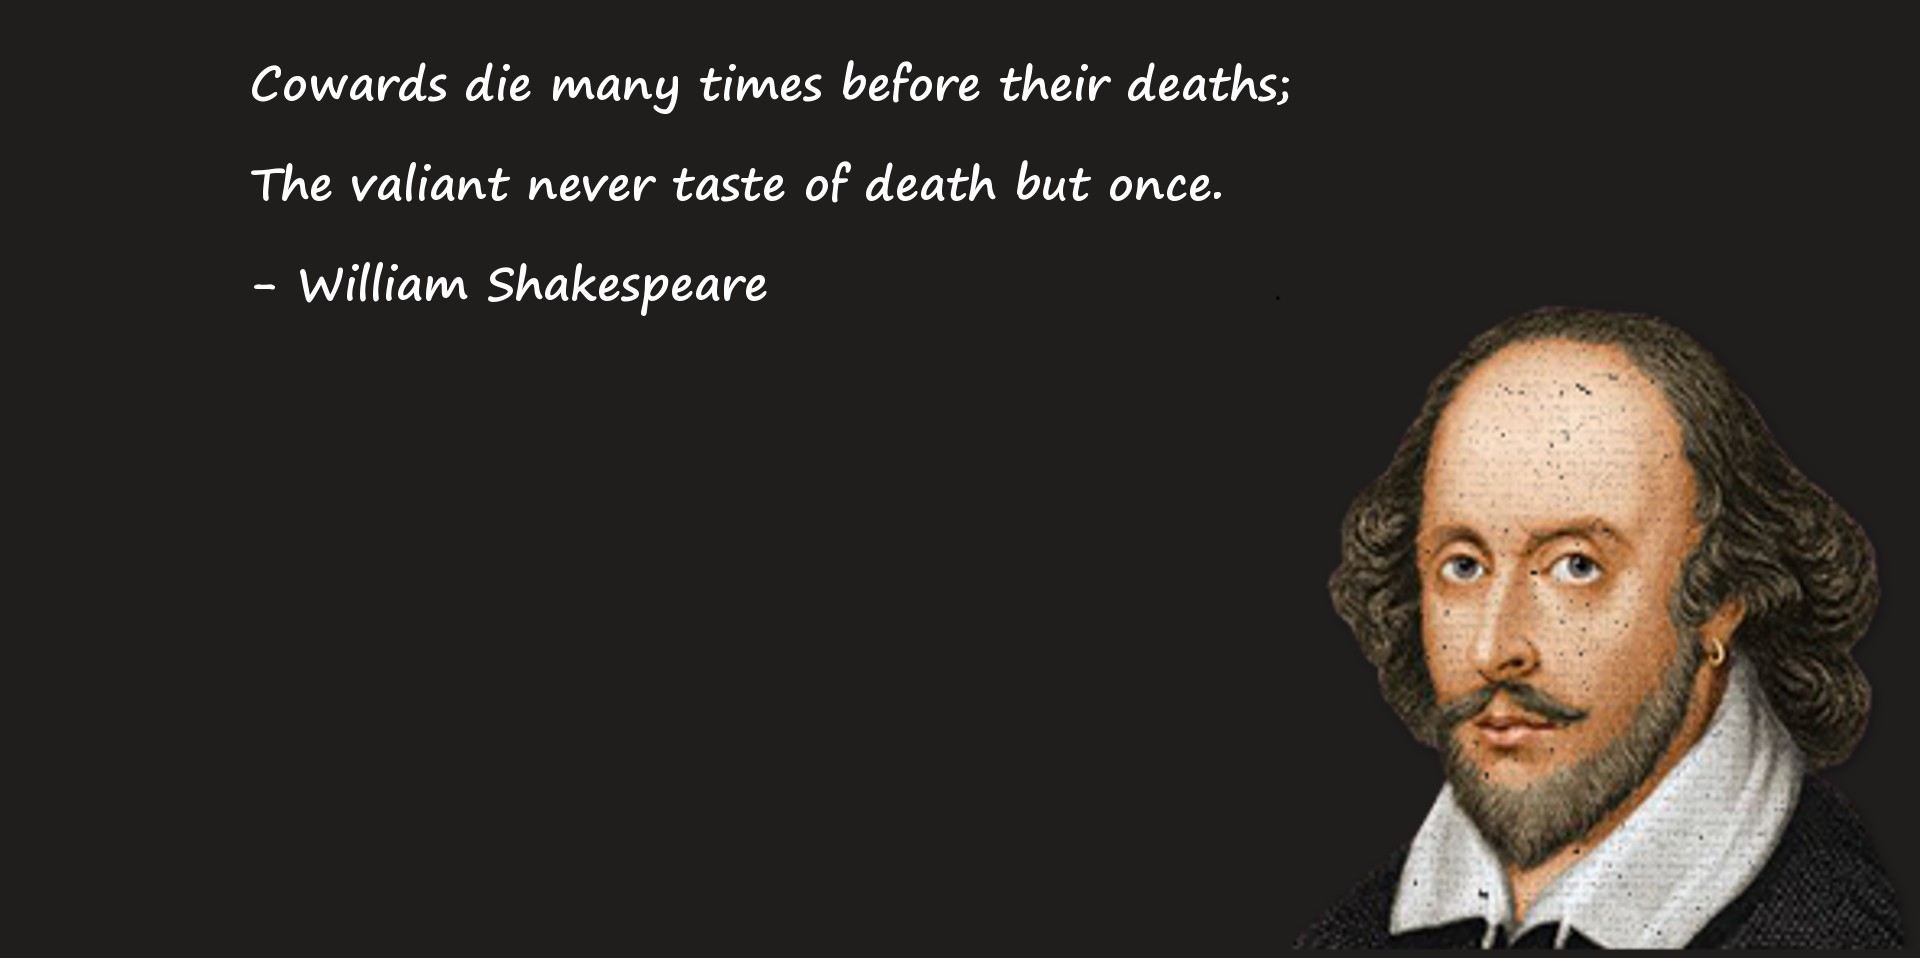 Shakespeare Quotes About Death Cowards Die Many Times Before Their Deaths  William Shakespeare